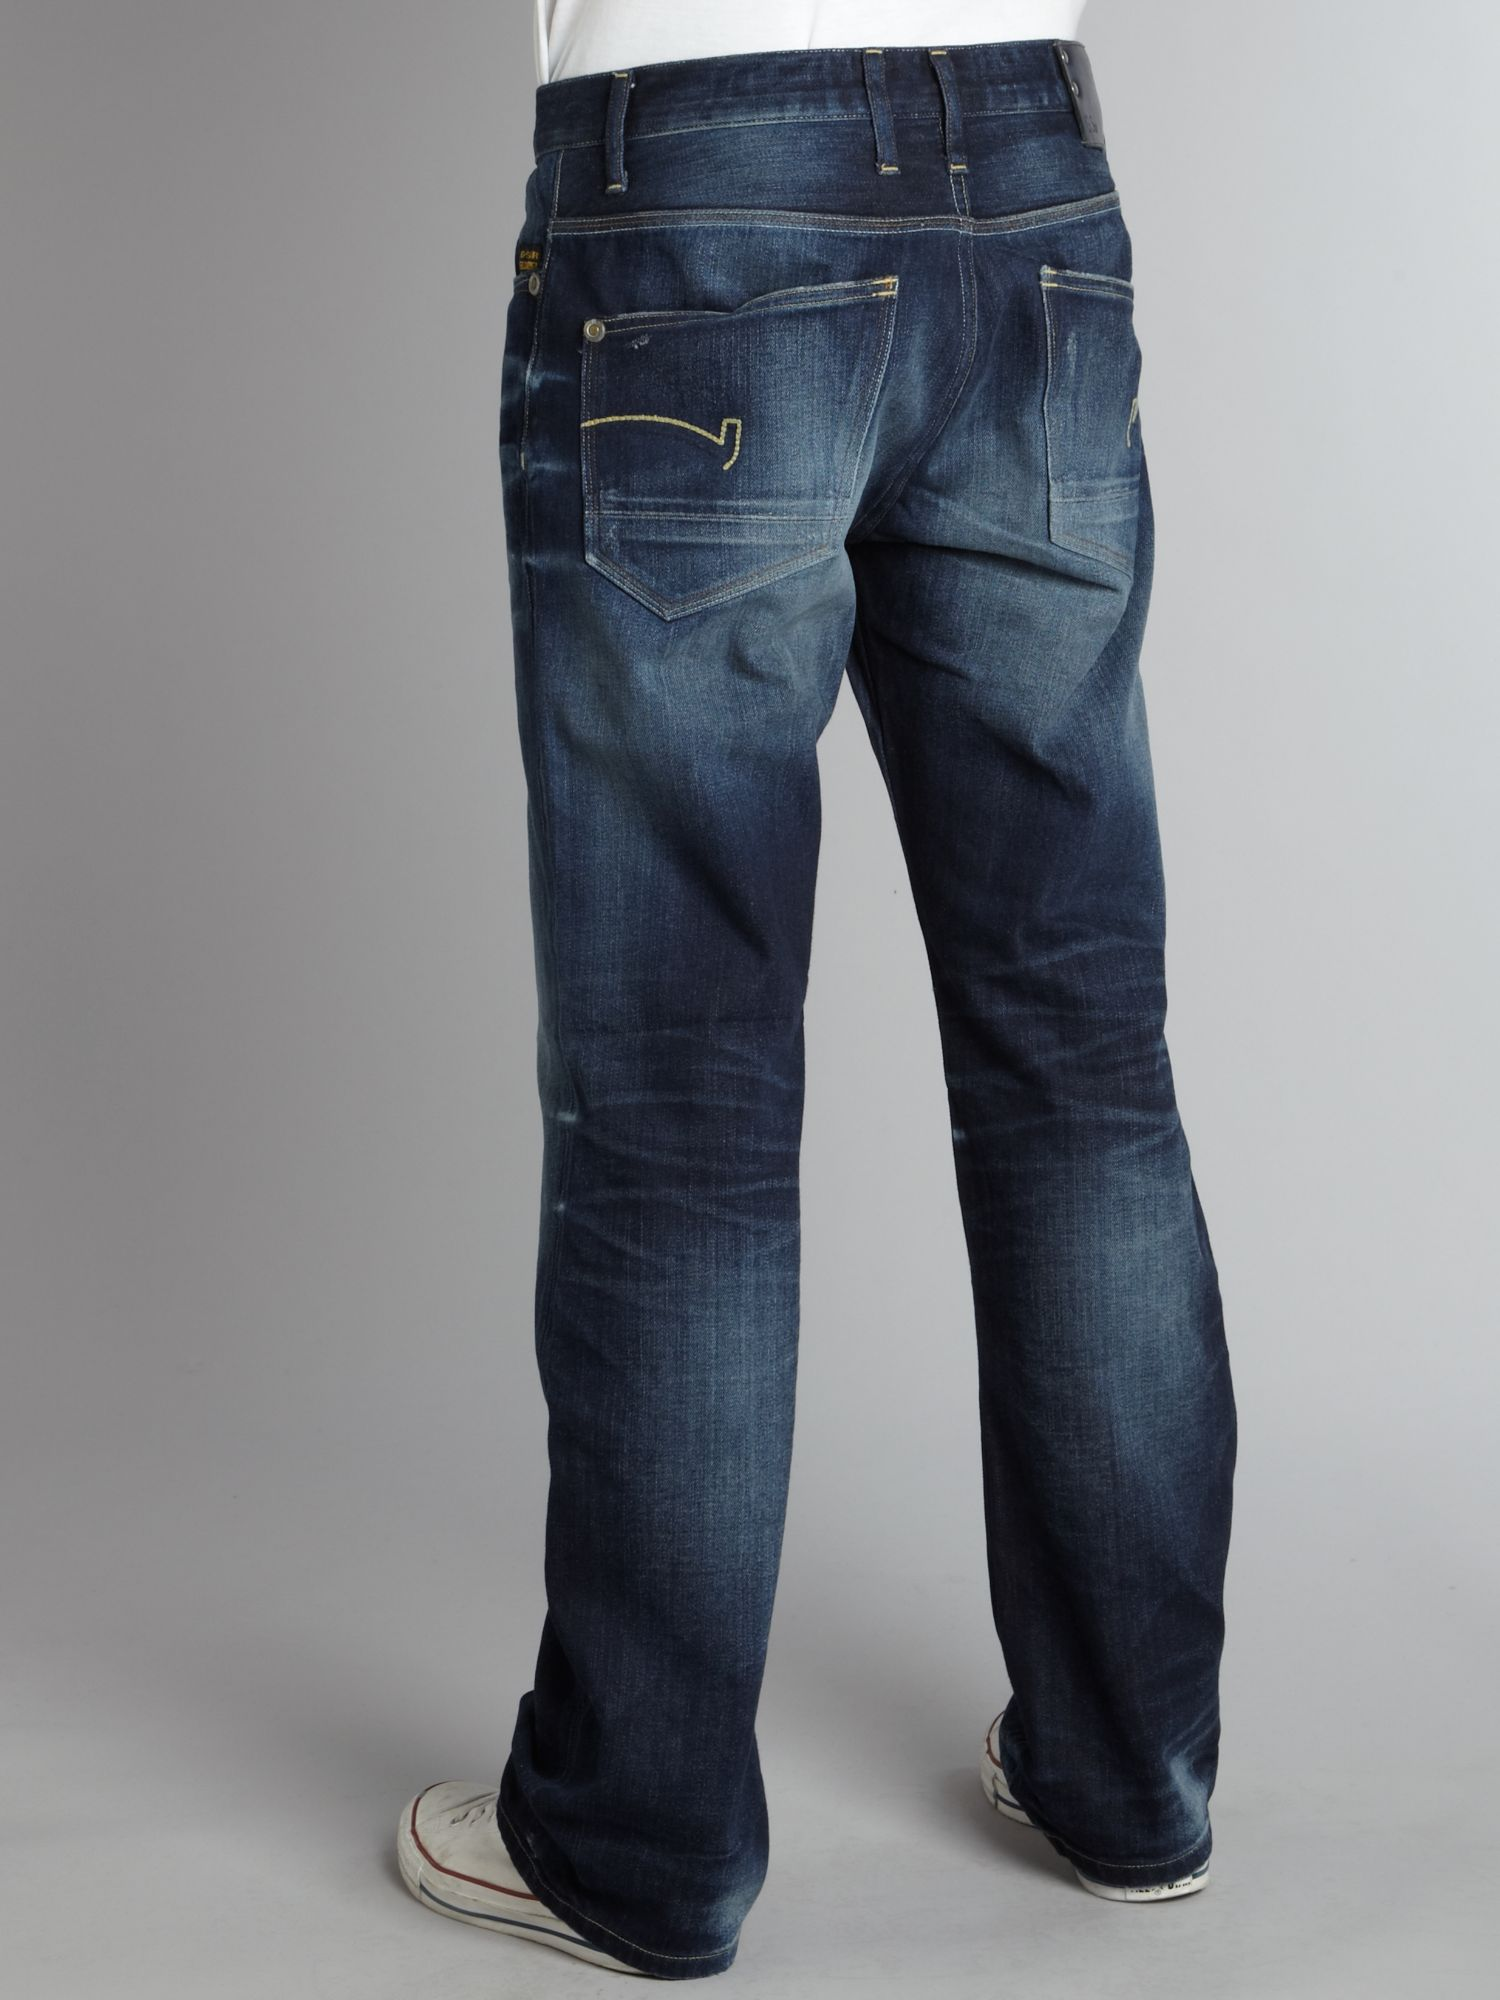 g star raw coder straight fit jeans in blue for men lyst. Black Bedroom Furniture Sets. Home Design Ideas